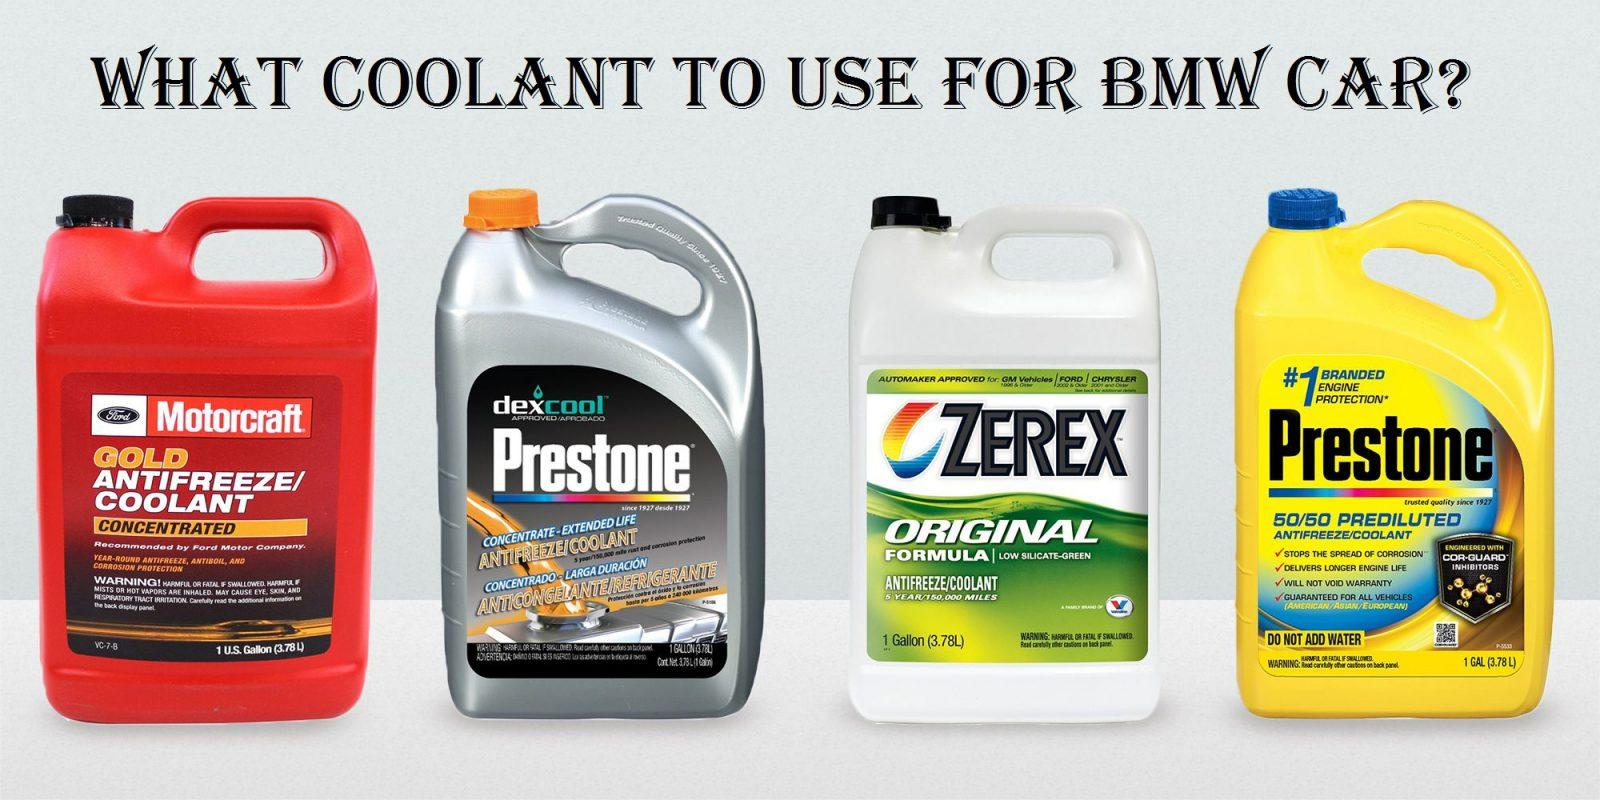 Top Bmw Coolant Picks Recommended By Auto Experts Mercedes Benz Engine Look For What To Use